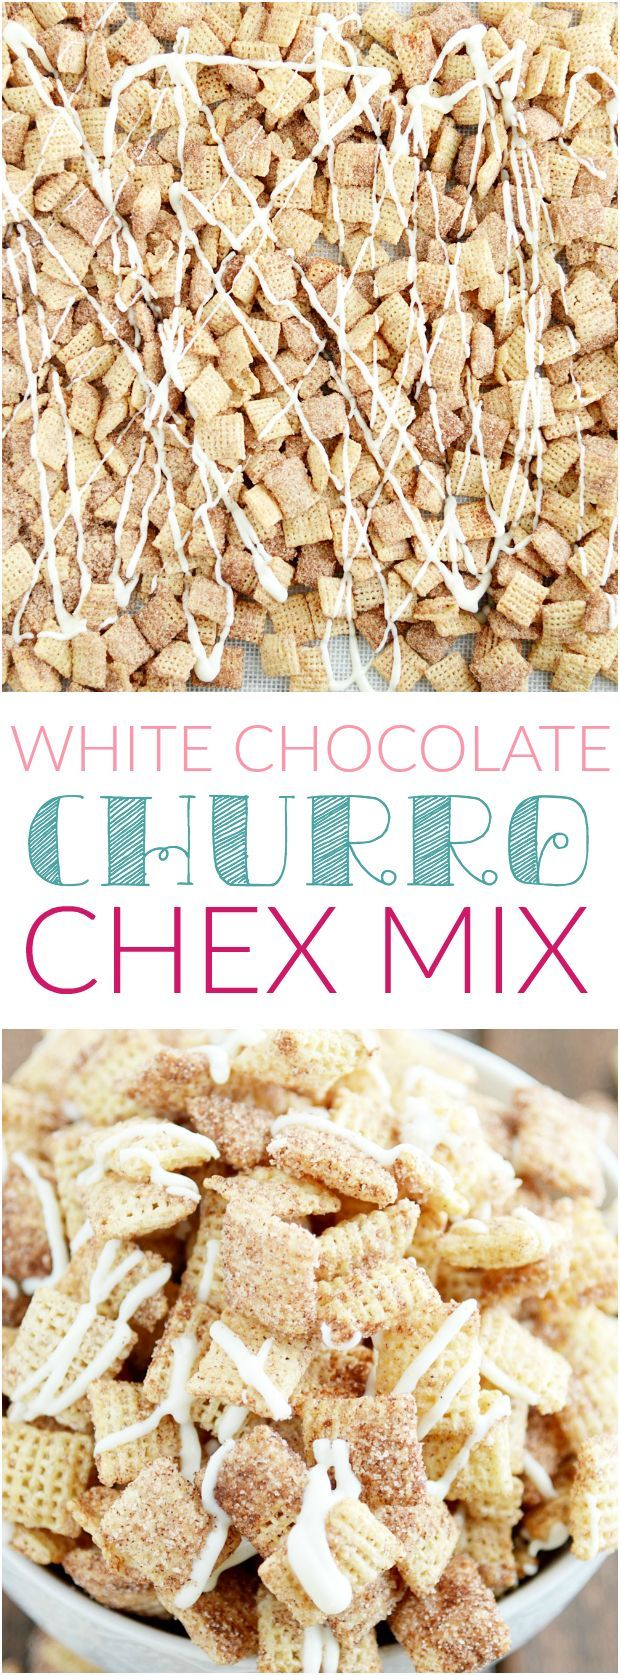 White Chocolate Churro Chex Mix http://www.somethingswanky.com/white-chocolate-churro-chex-mix/?utm_campaign=coschedule&utm_source=pinterest&utm_medium=Something%20Swanky&utm_content=White%20Chocolate%20Churro%20Chex%20Mix